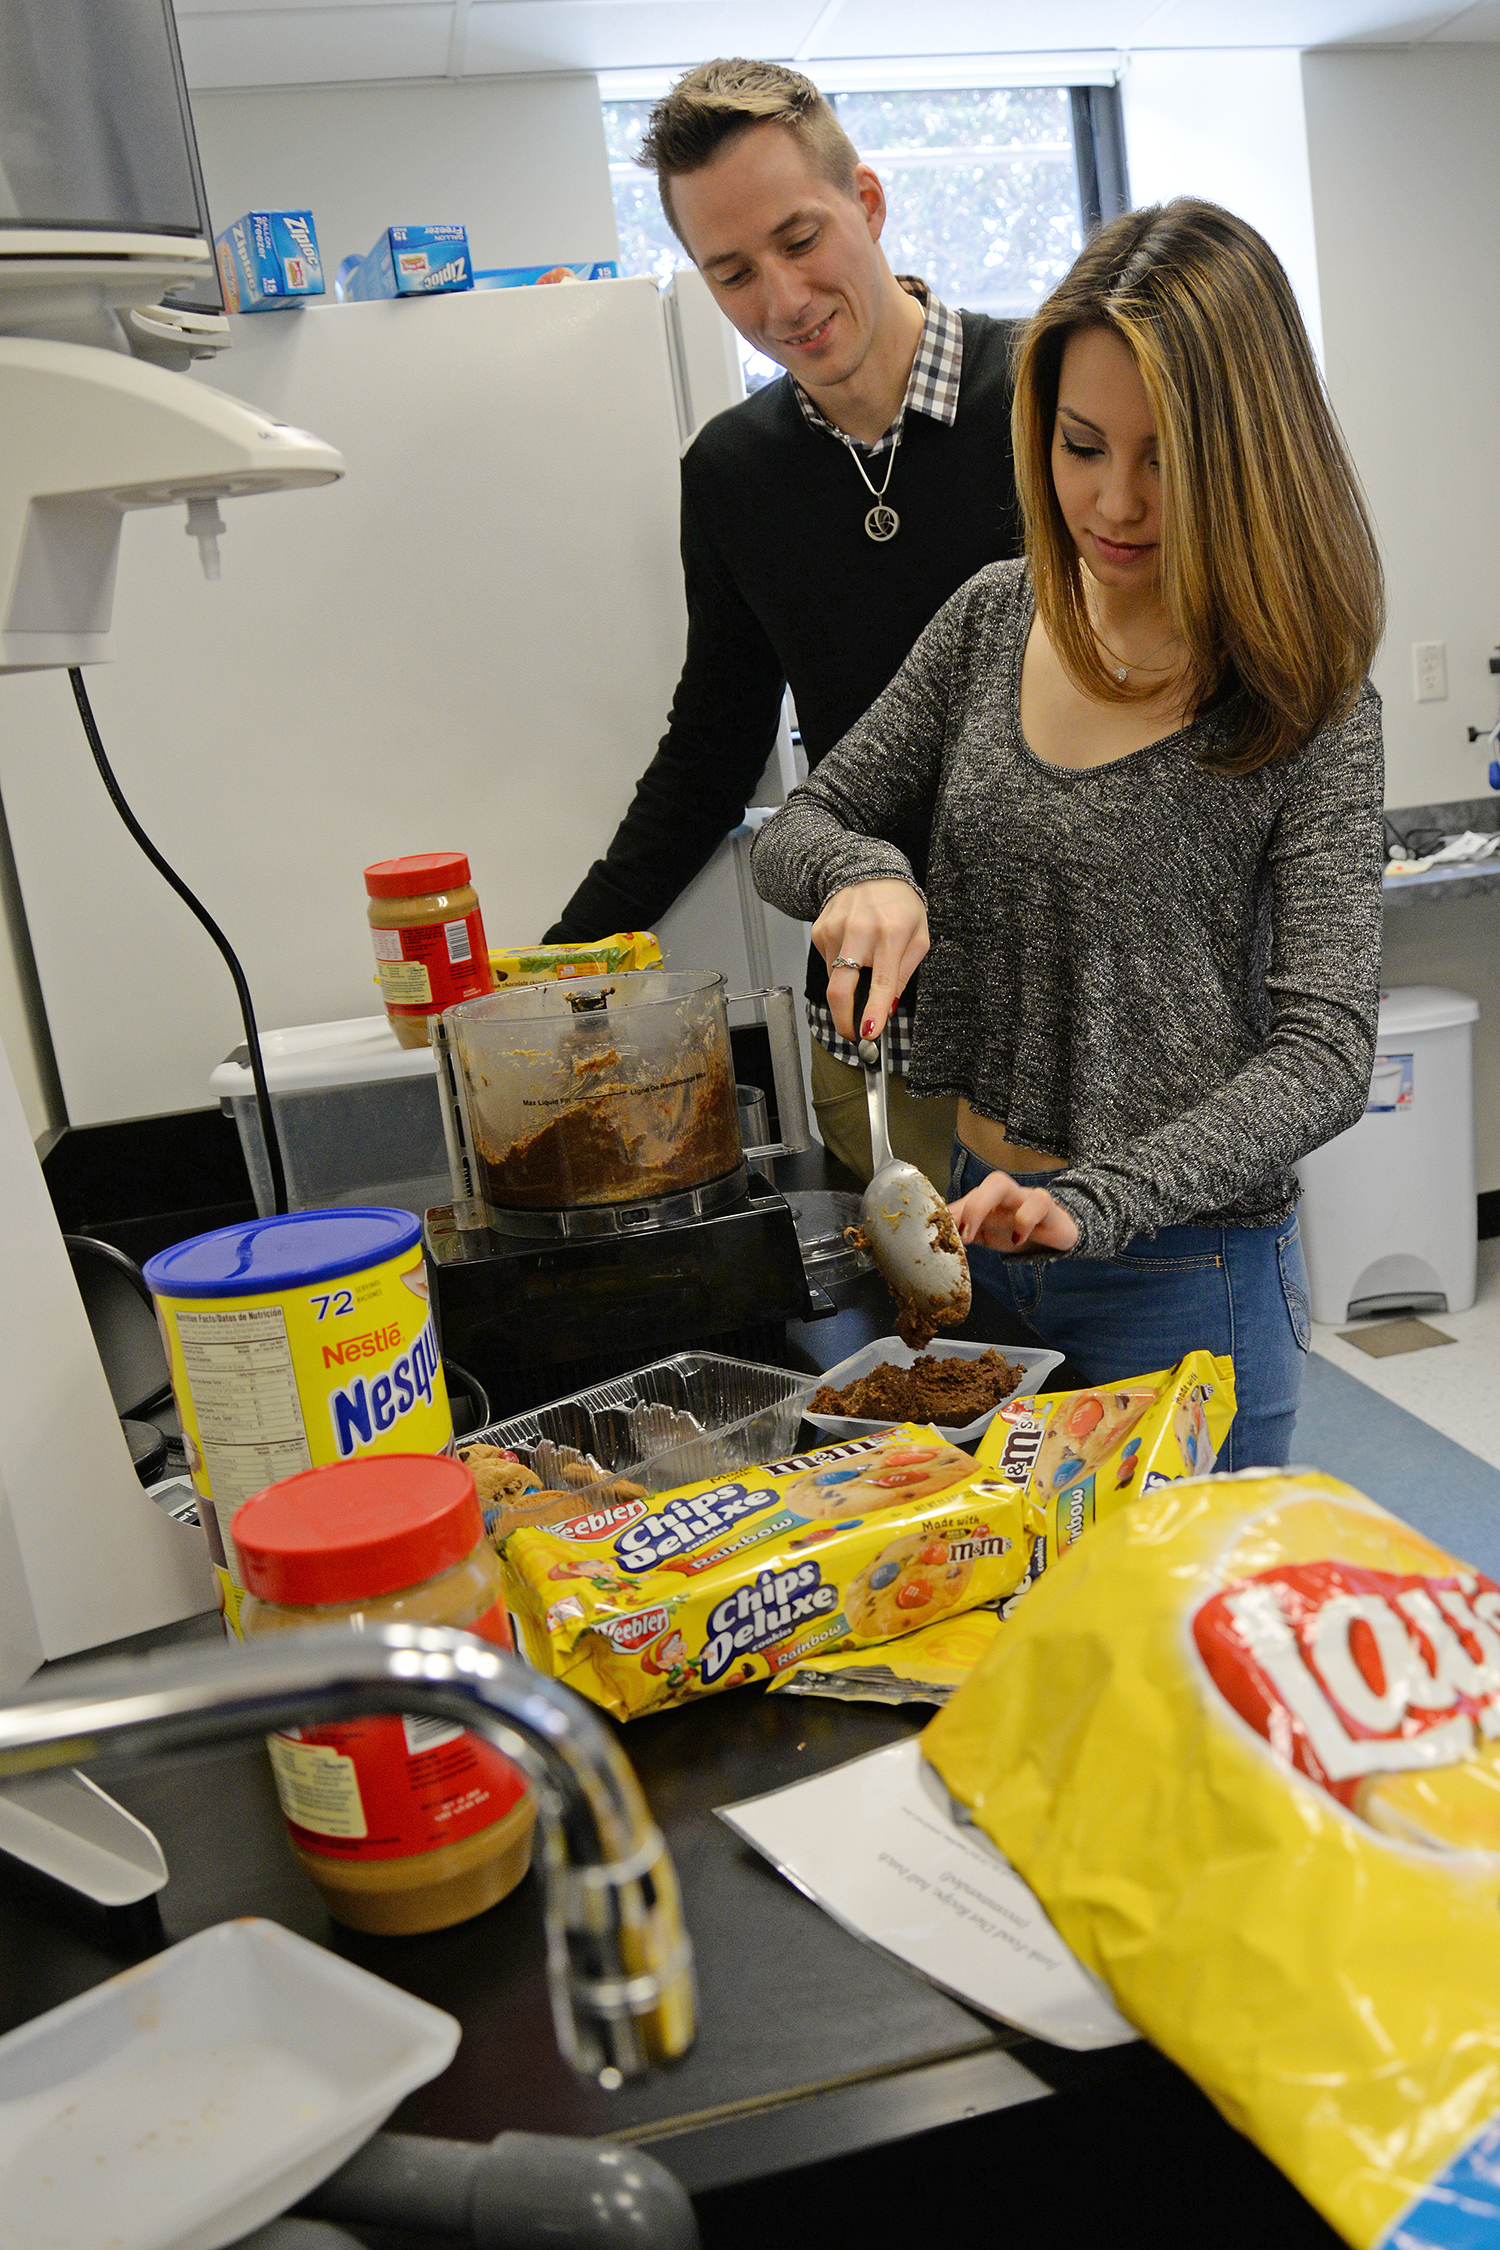 Mike Robinson and Rebecca Tom '16 remove the junk food concoction from the food processor.